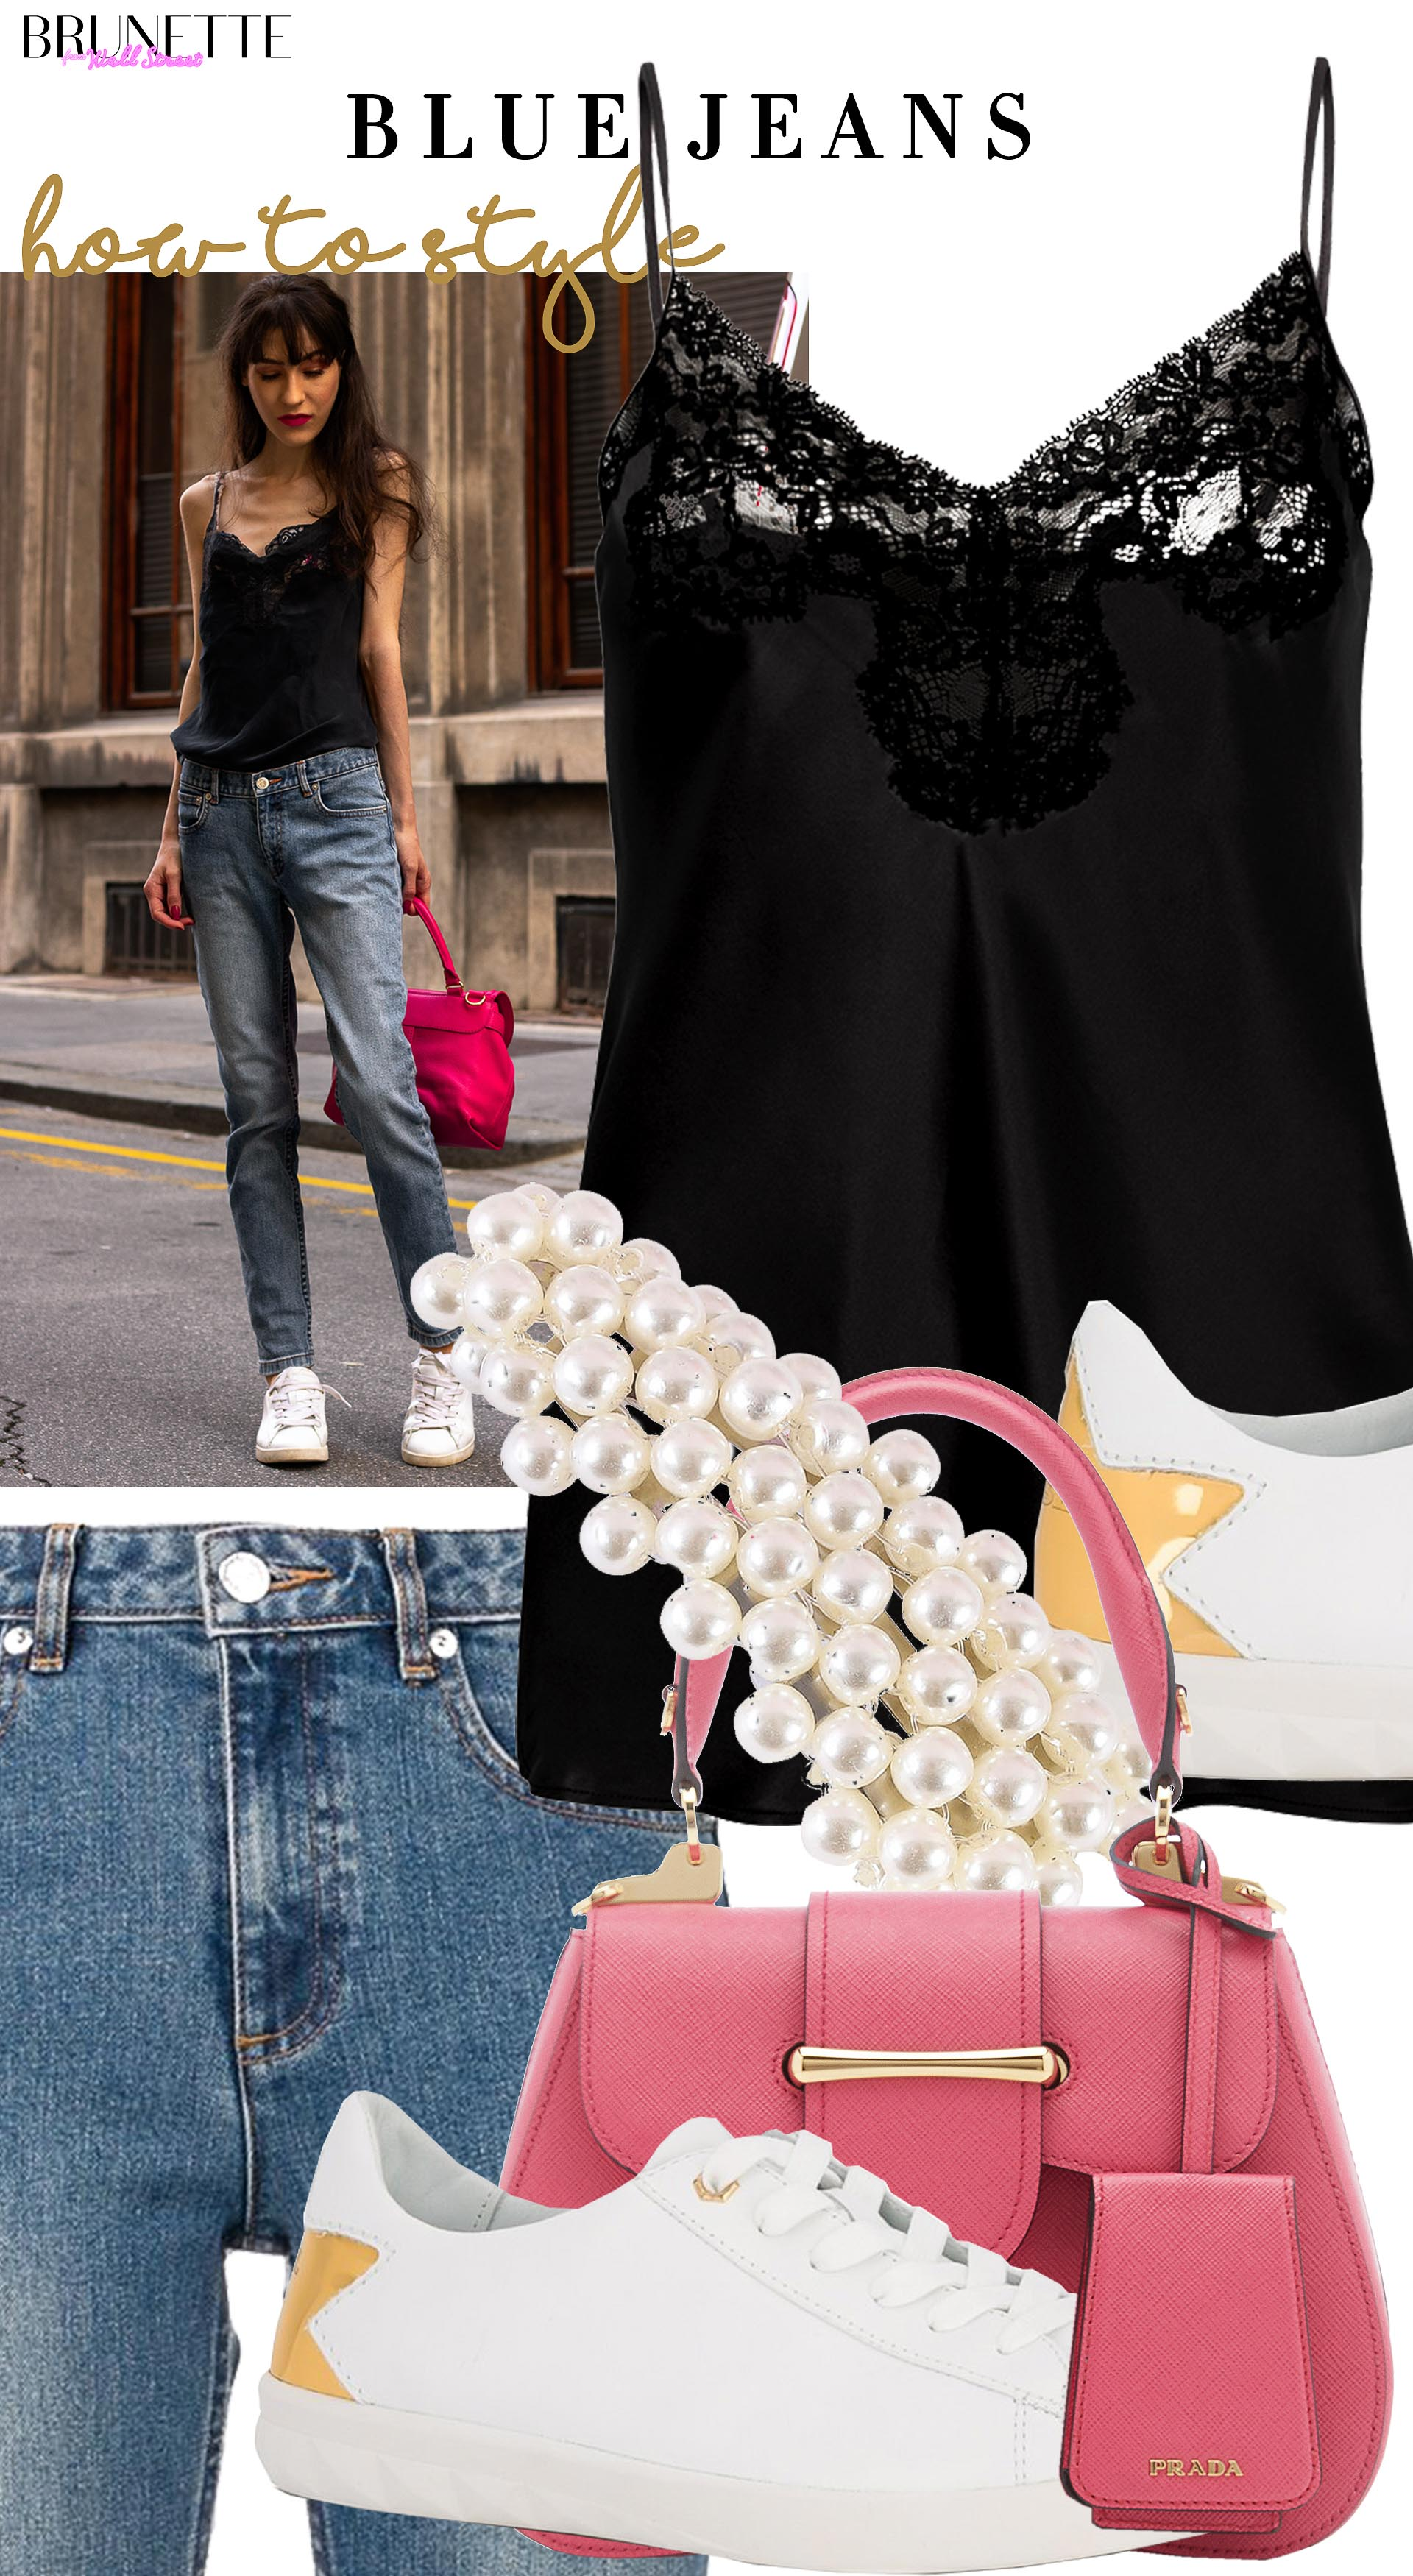 Brunette from Wall Street Veronika Lipar How to style Blue Jeans white sneakers pink prada bag black slip top